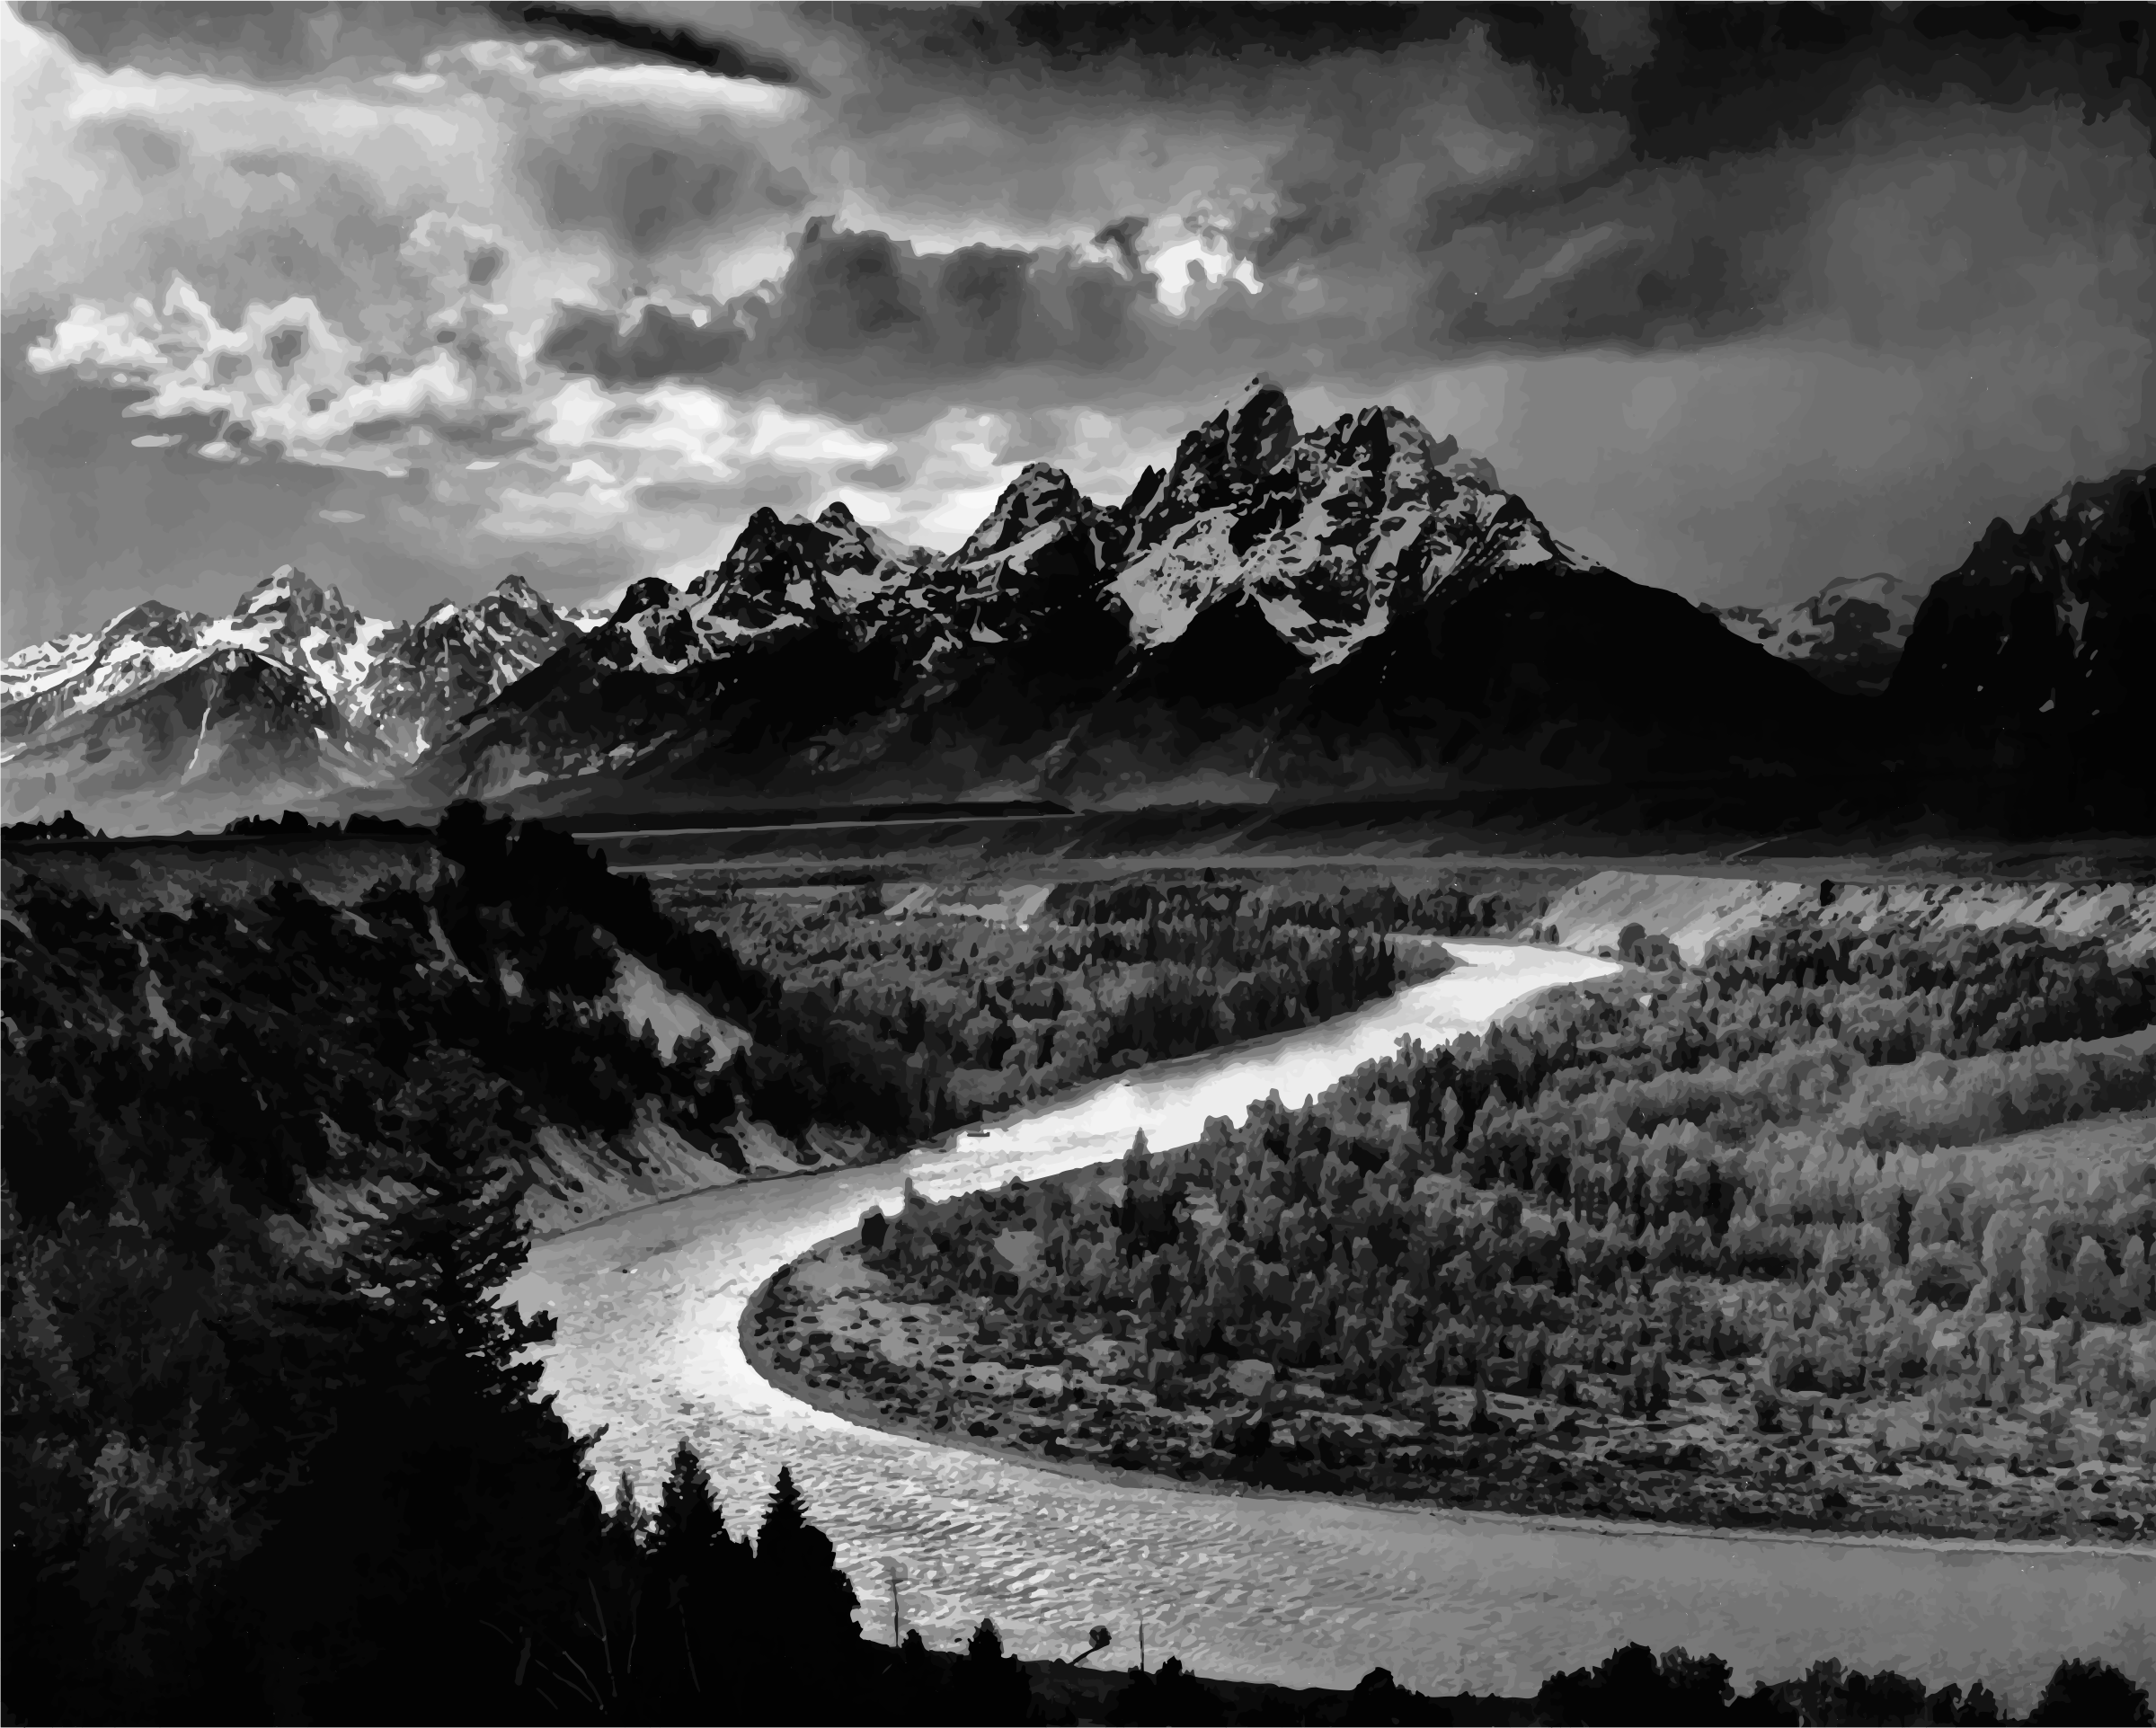 The Tetons and the Snake River (1942) by GDJ